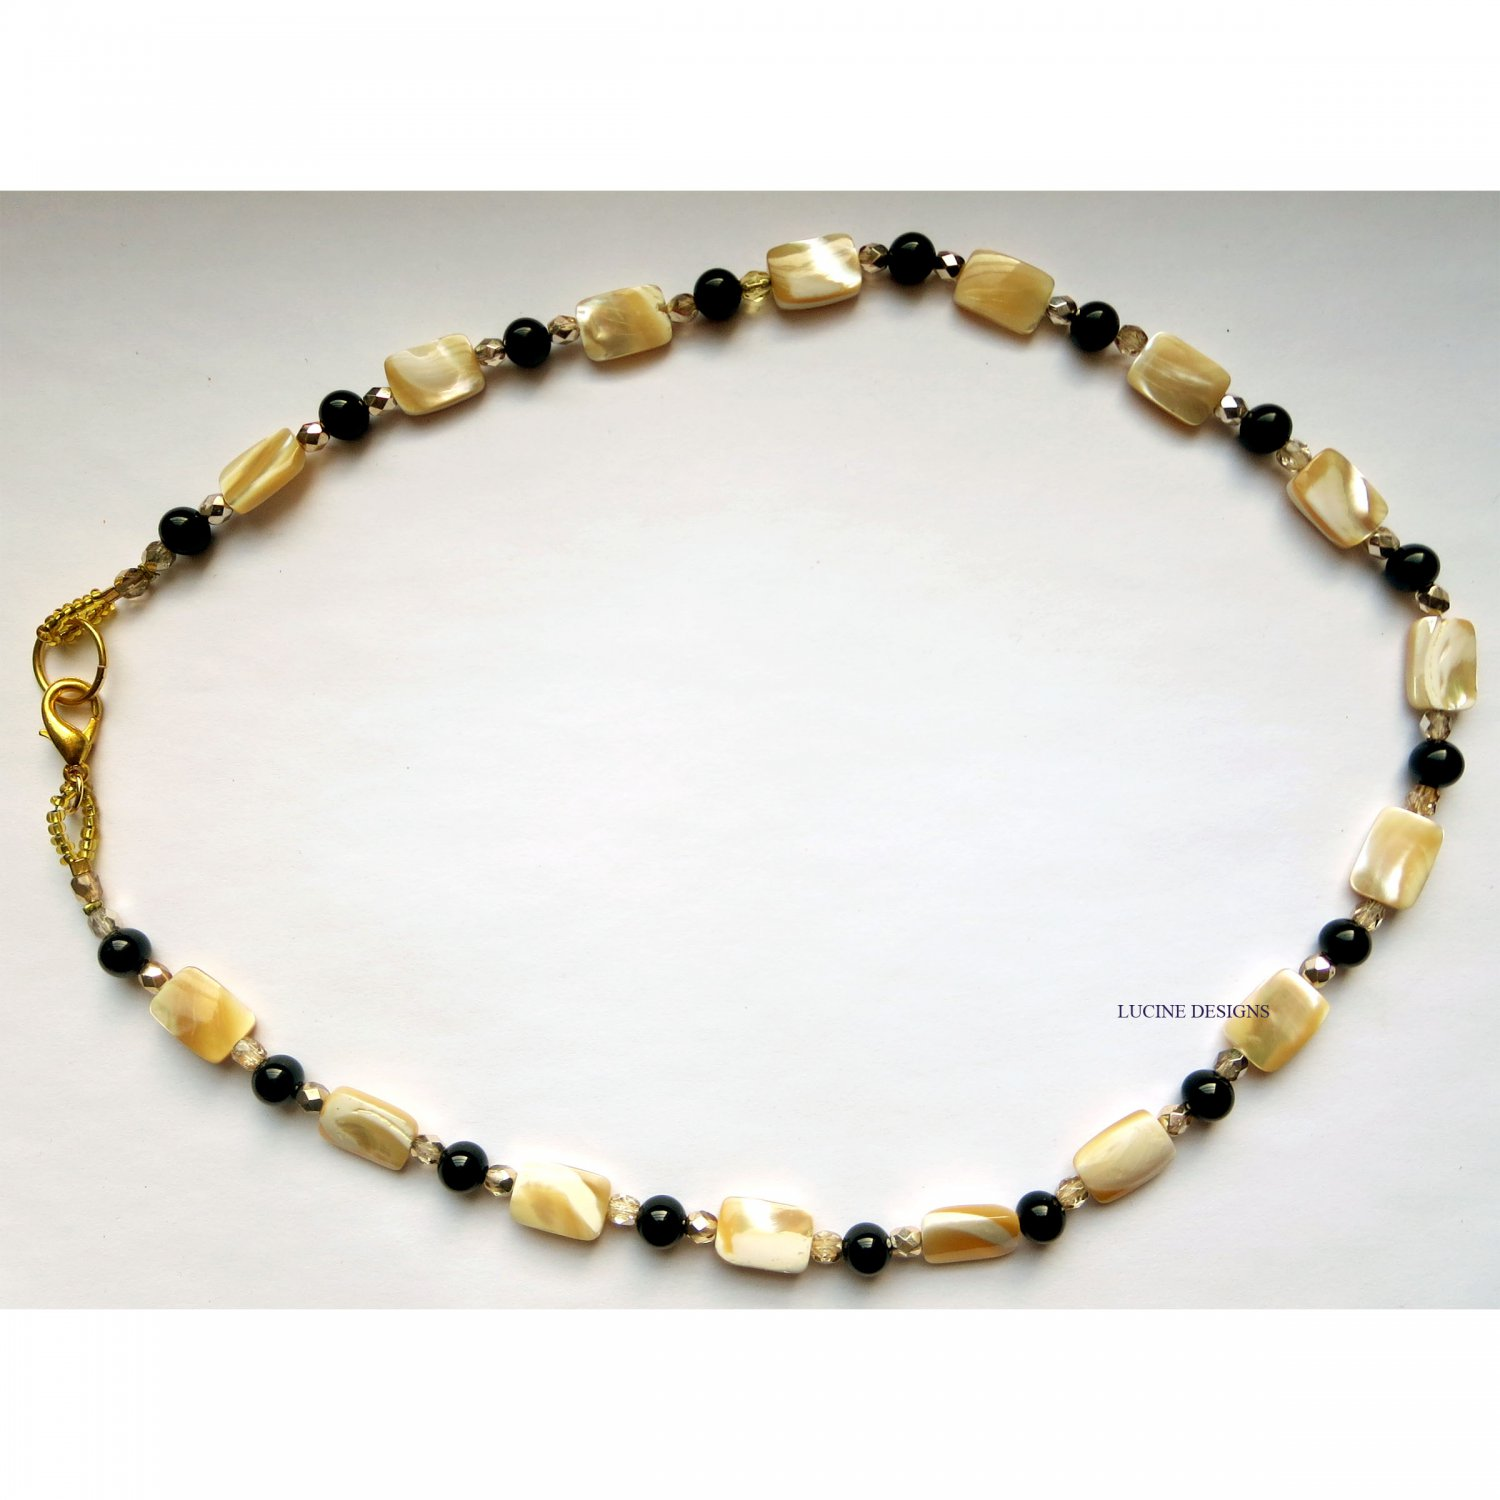 Semiprecious onyx with mother of pearl trendy long fashion necklace by Lucine